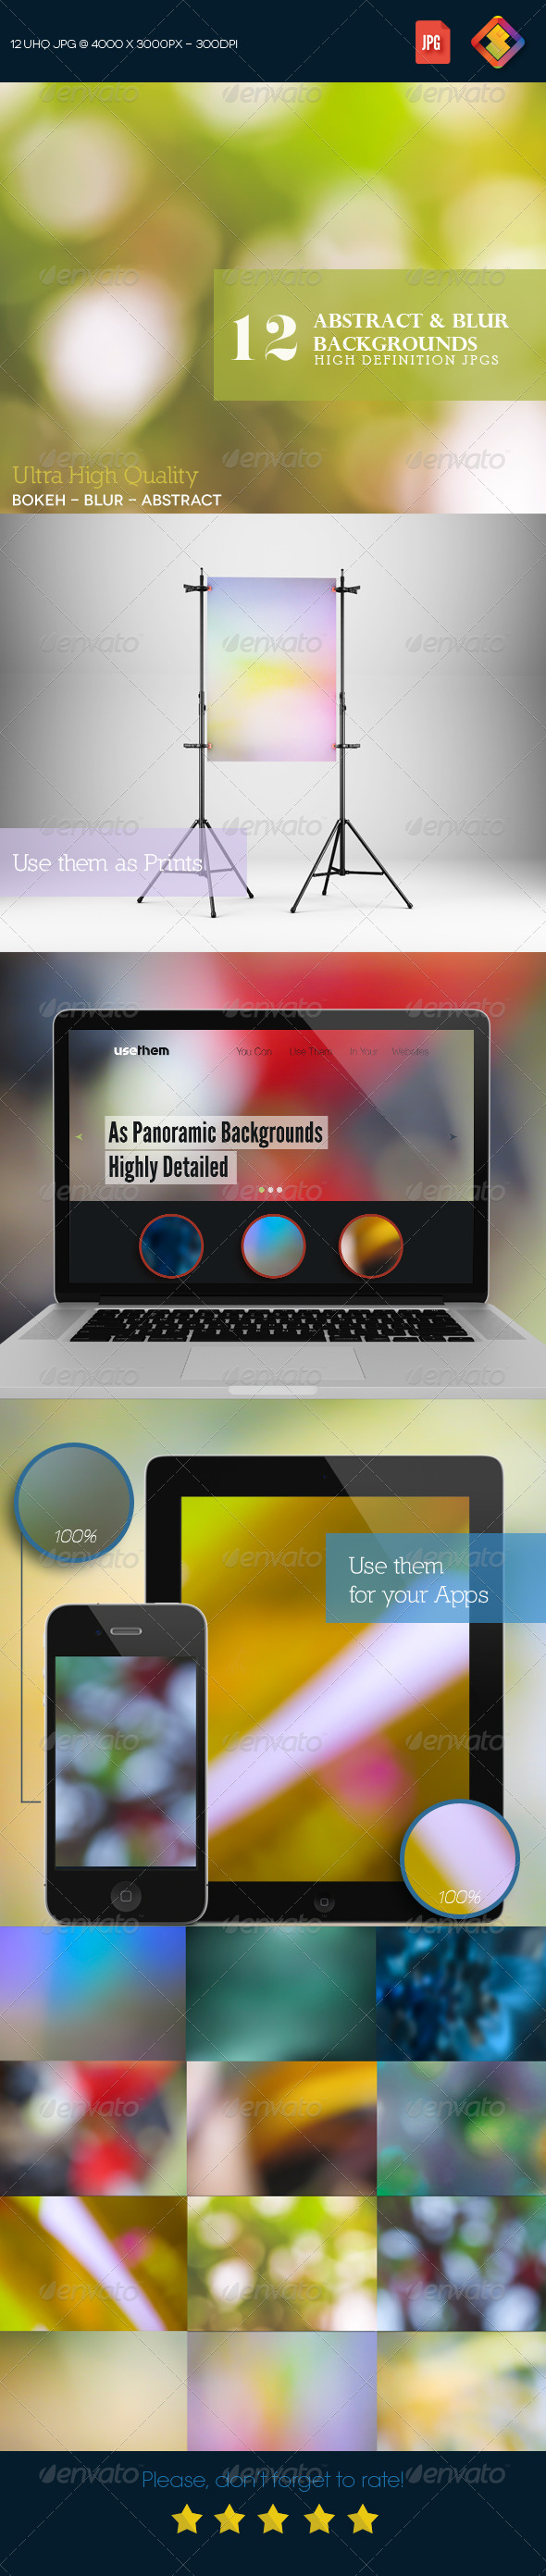 12HD Abstract & Blur Backgrounds V5 - Abstract Backgrounds